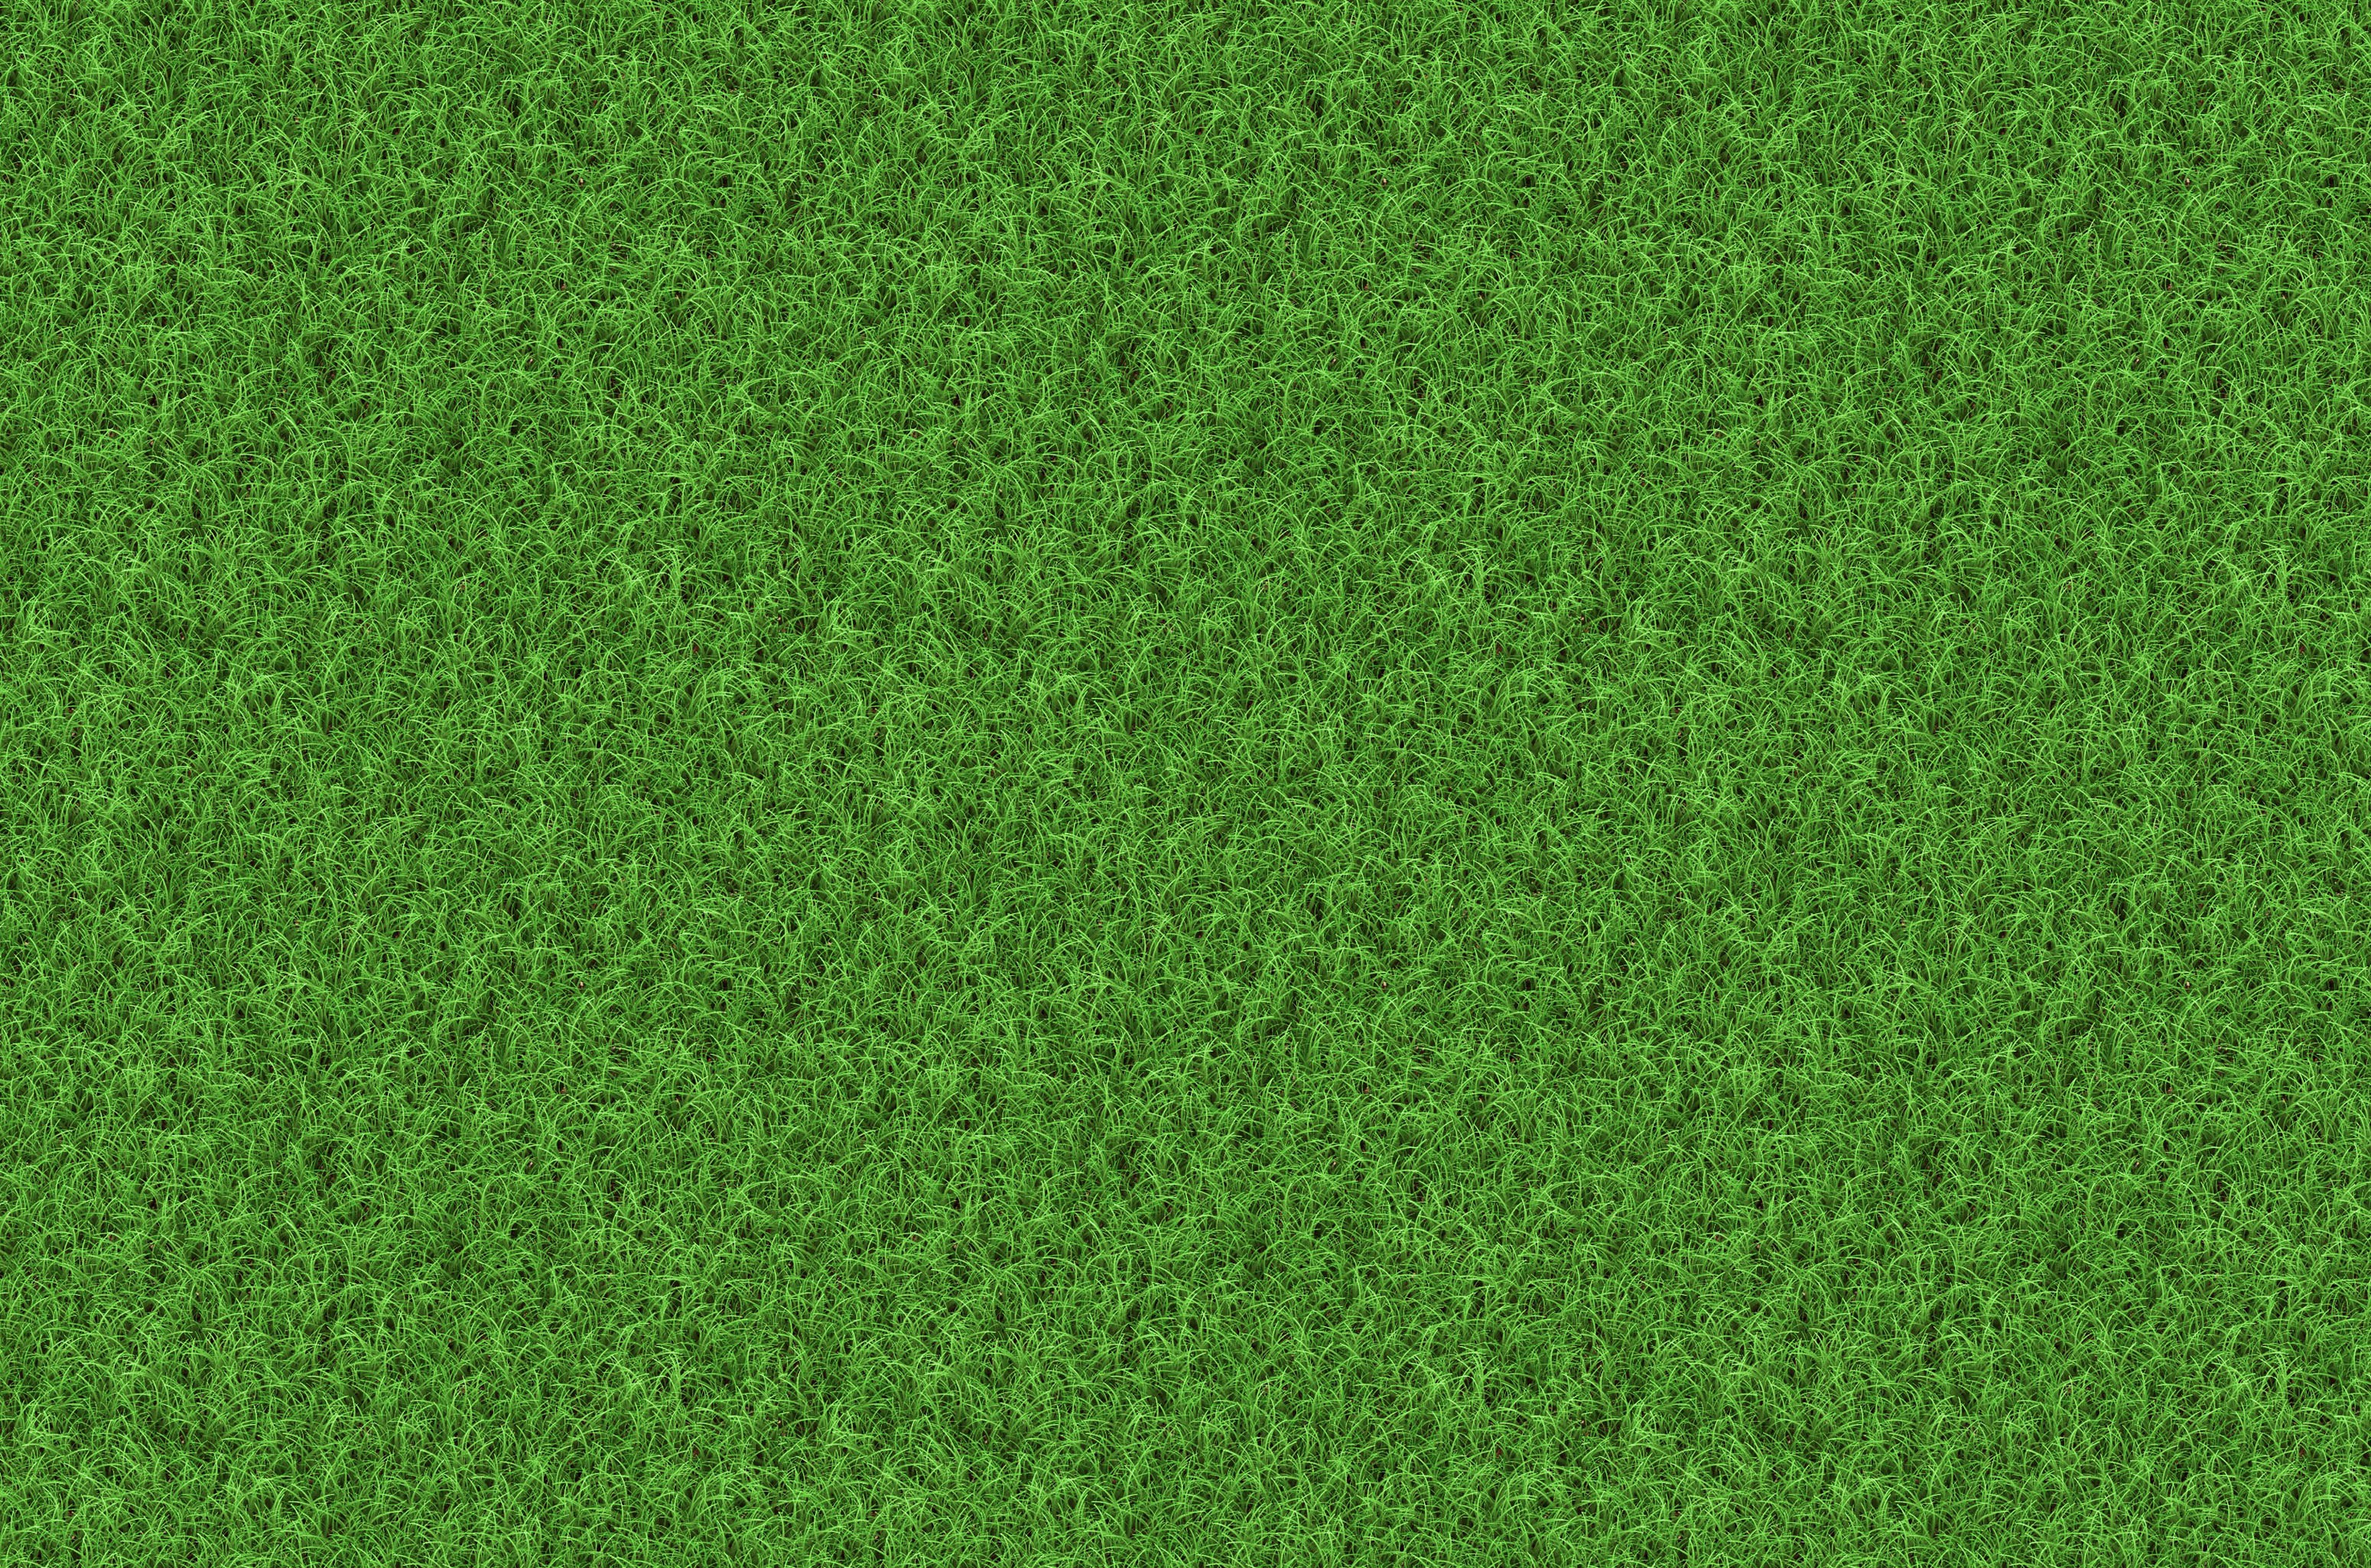 grass background hd green download free grass background 1920x1200 grass download backgrounds for desktop and